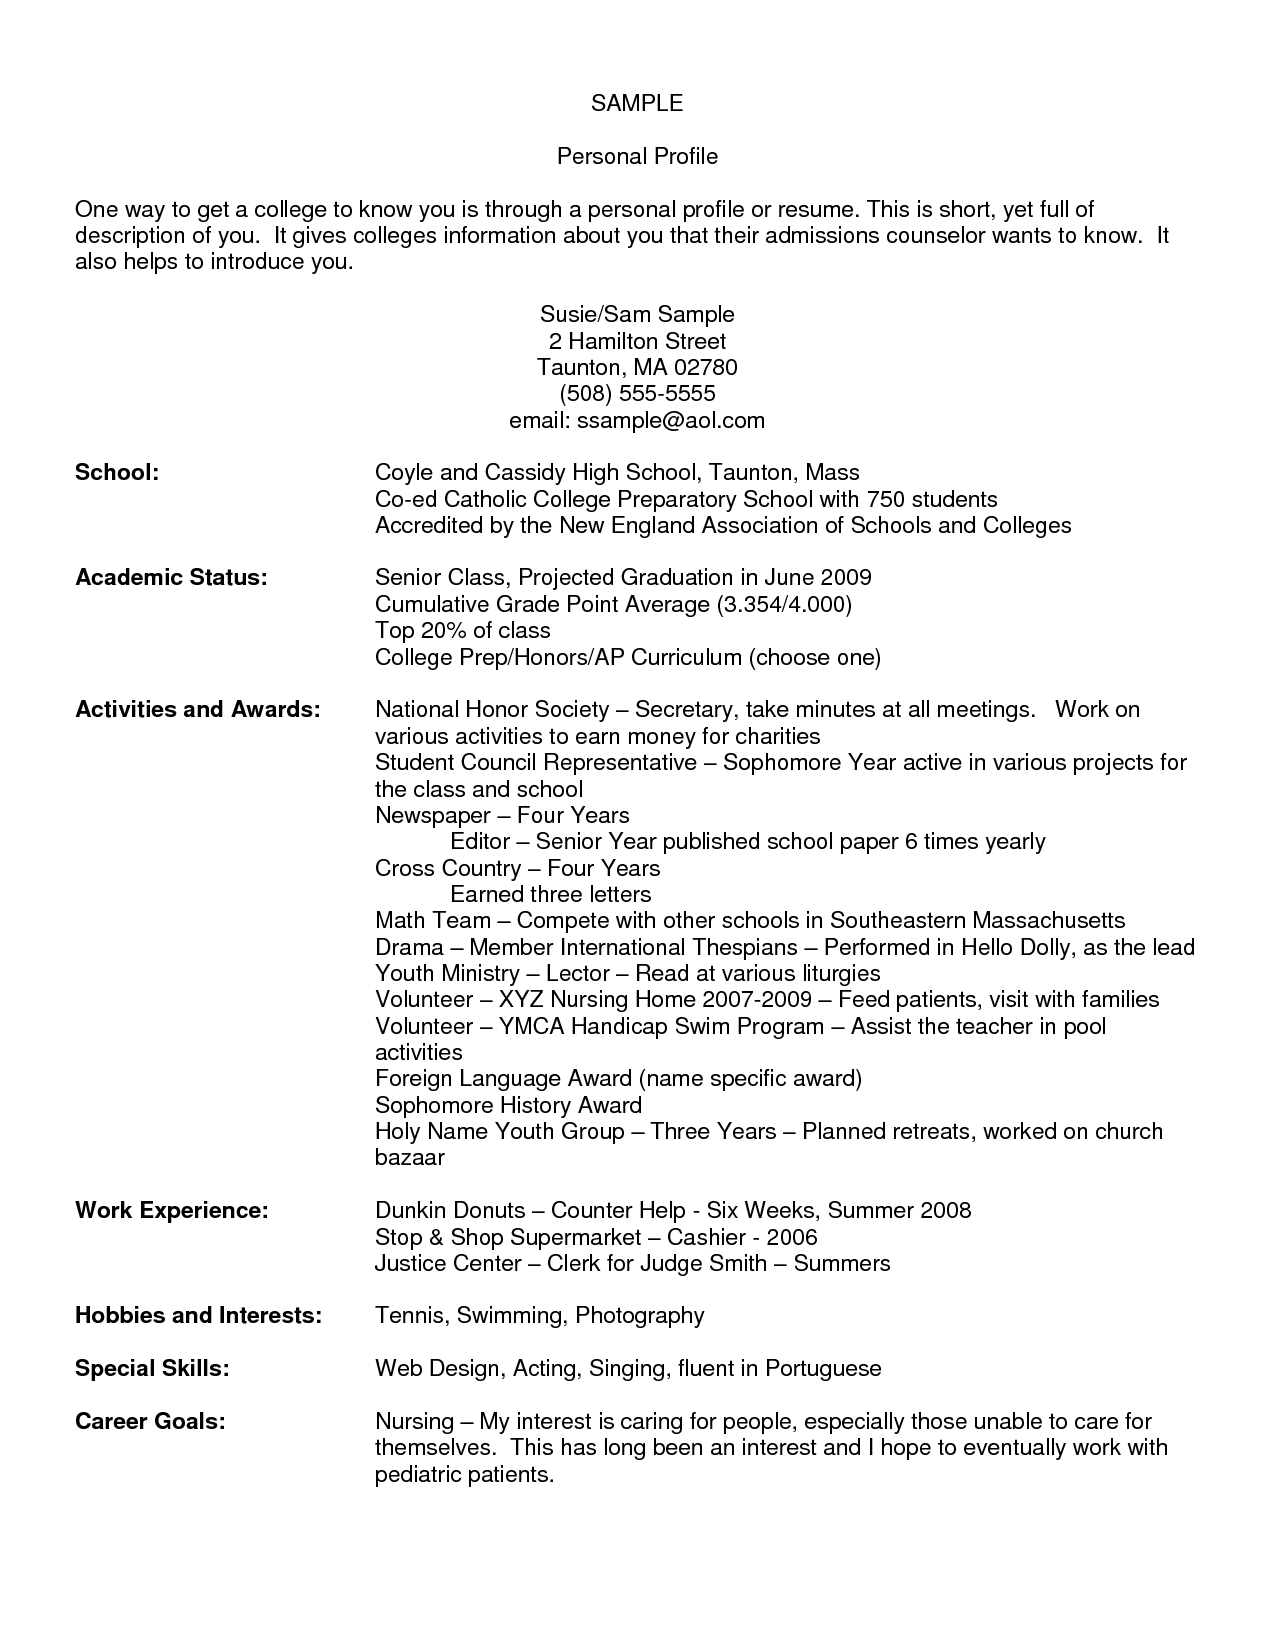 Store Clerk Sample Resume Grocery Store Cashier Resume Example Templates Retail Resumes .